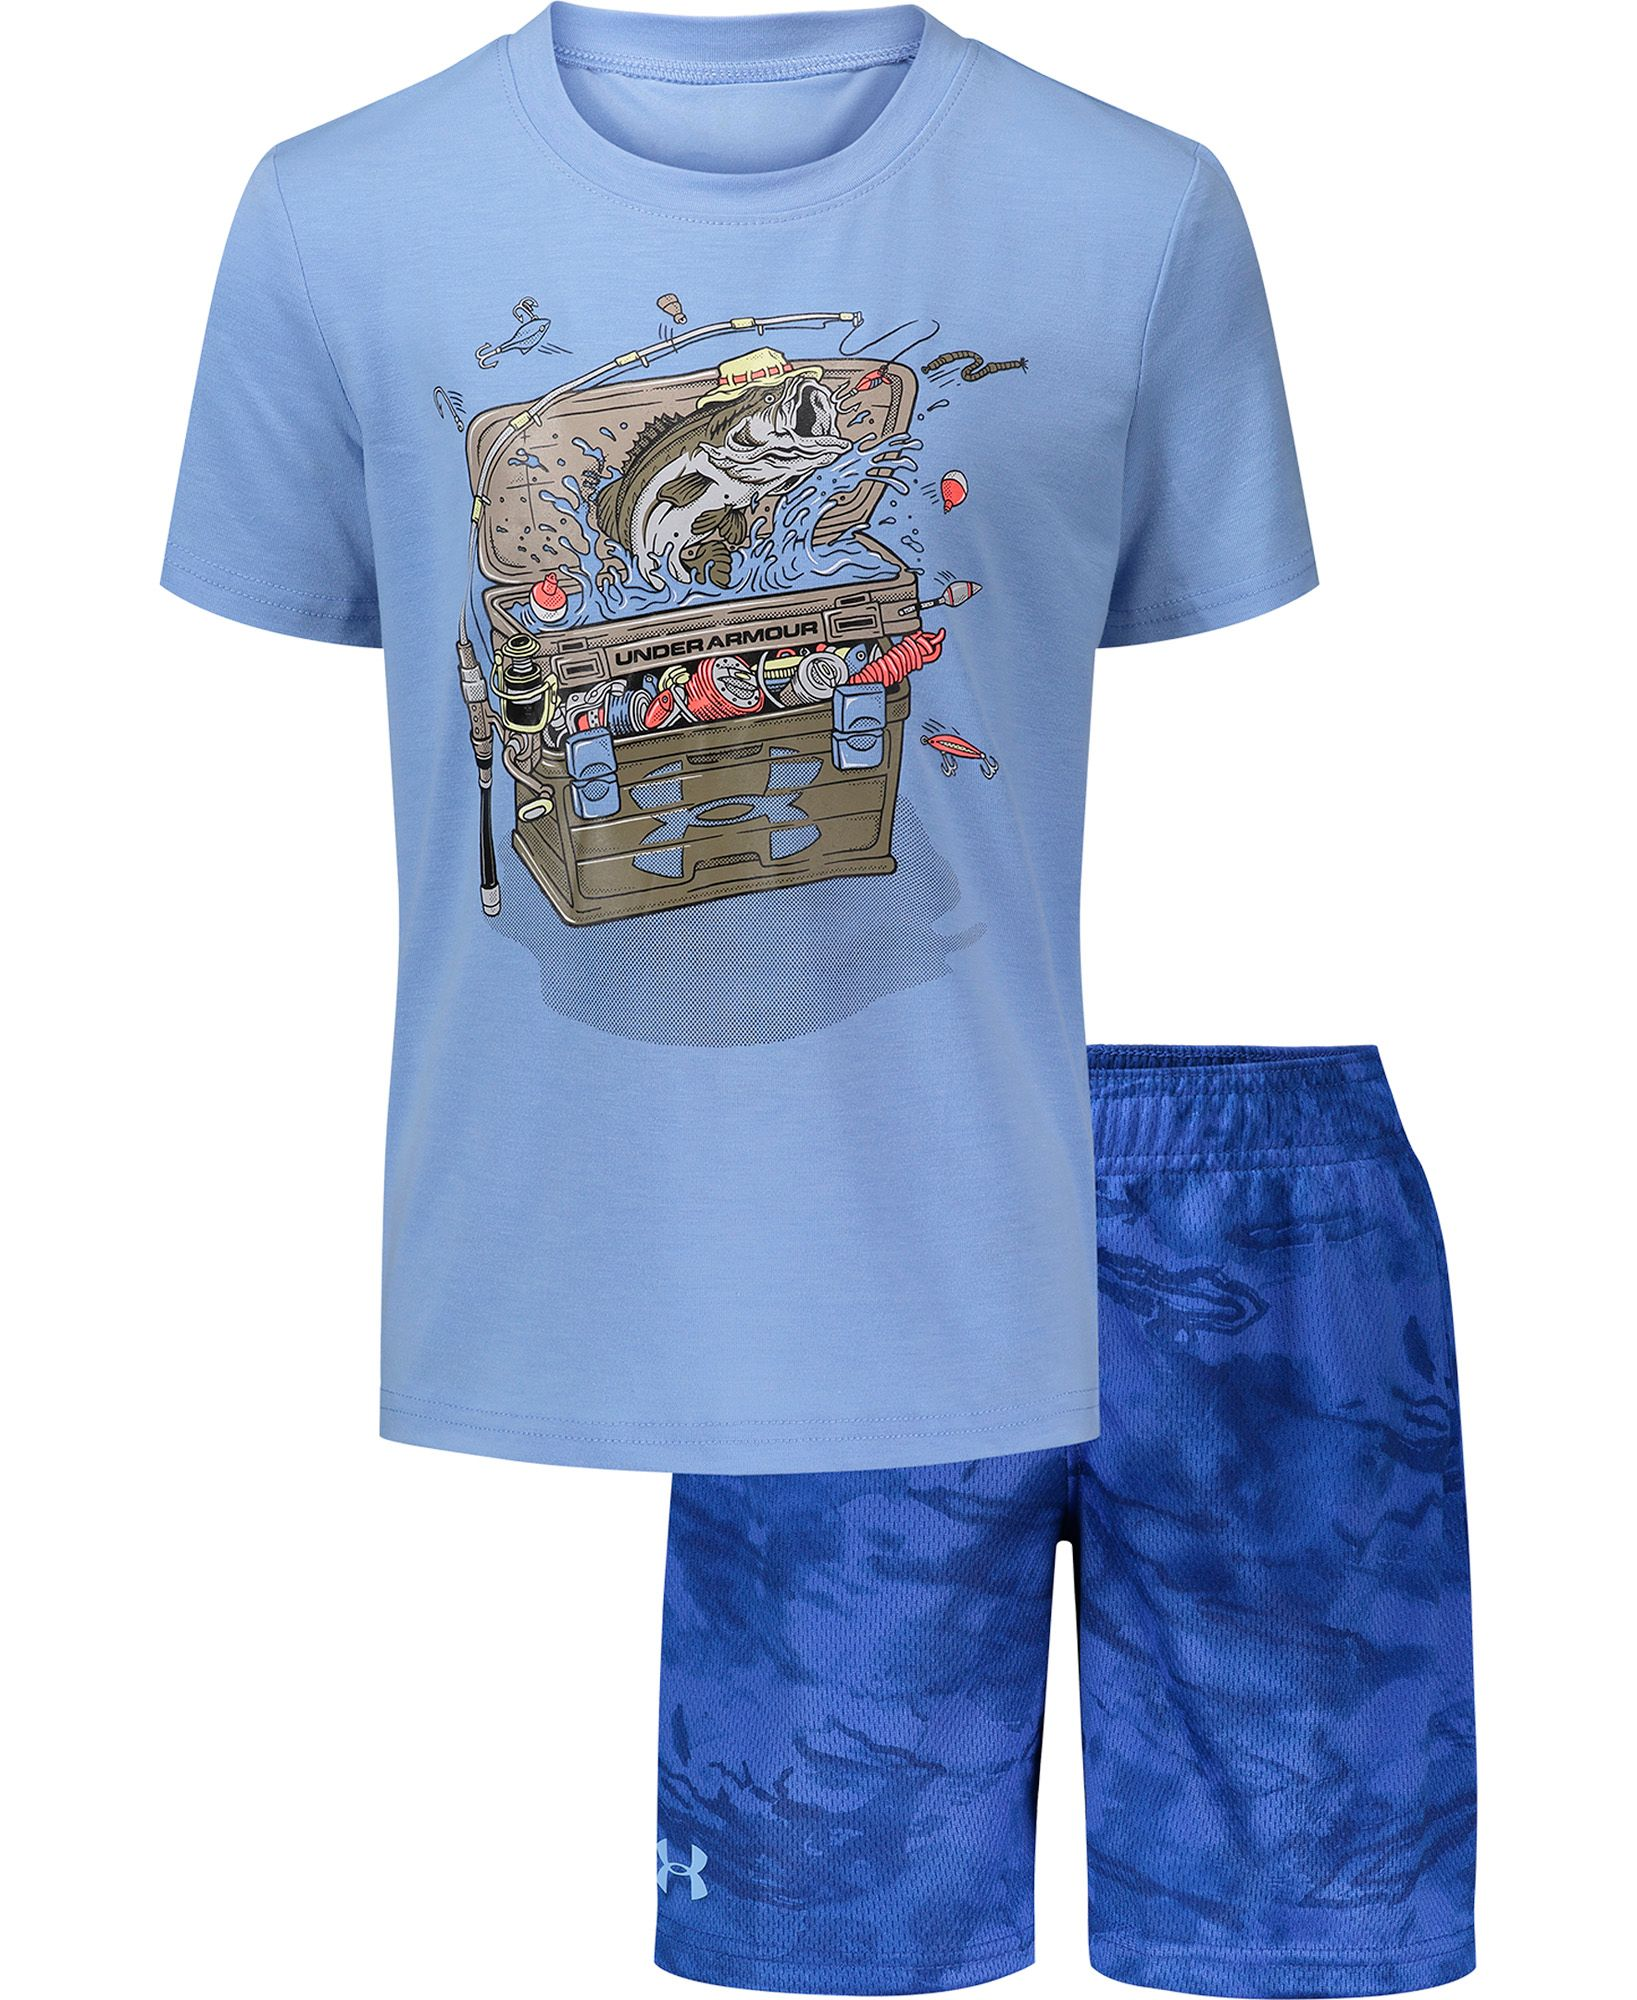 Under Armour Toddler Boys' Tackle Box T-Shirt and Shorts 2-Piece Set, Boy's, Size: 3T, Blue